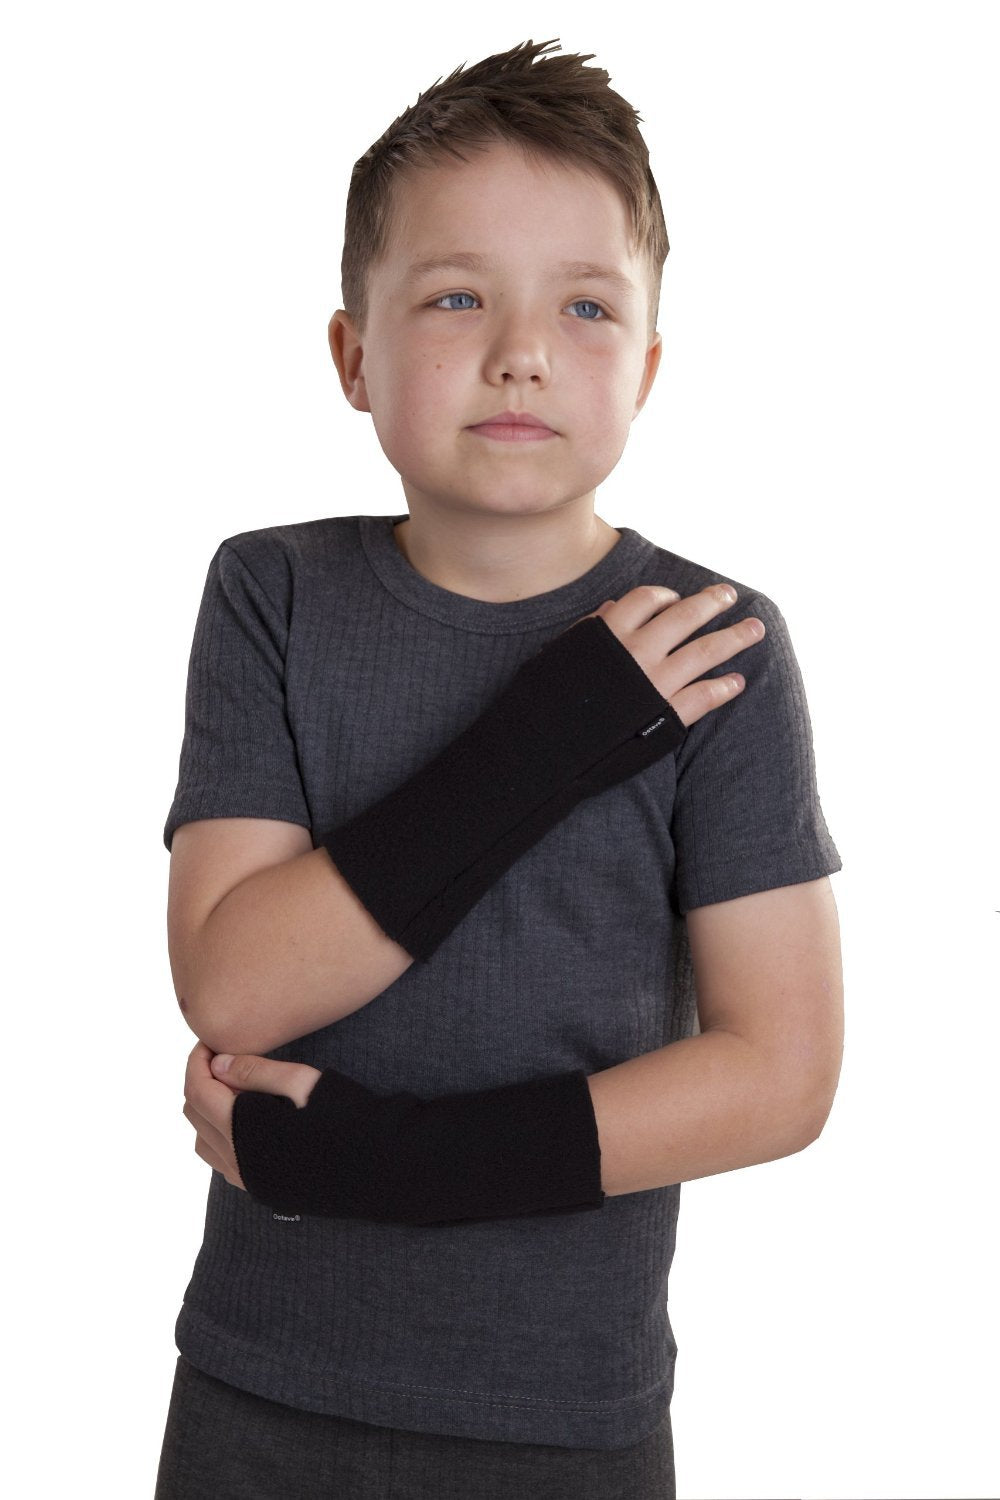 OCTAVE Kids Fingerless Gloves : Wrist Warmers Fingerless Gloves